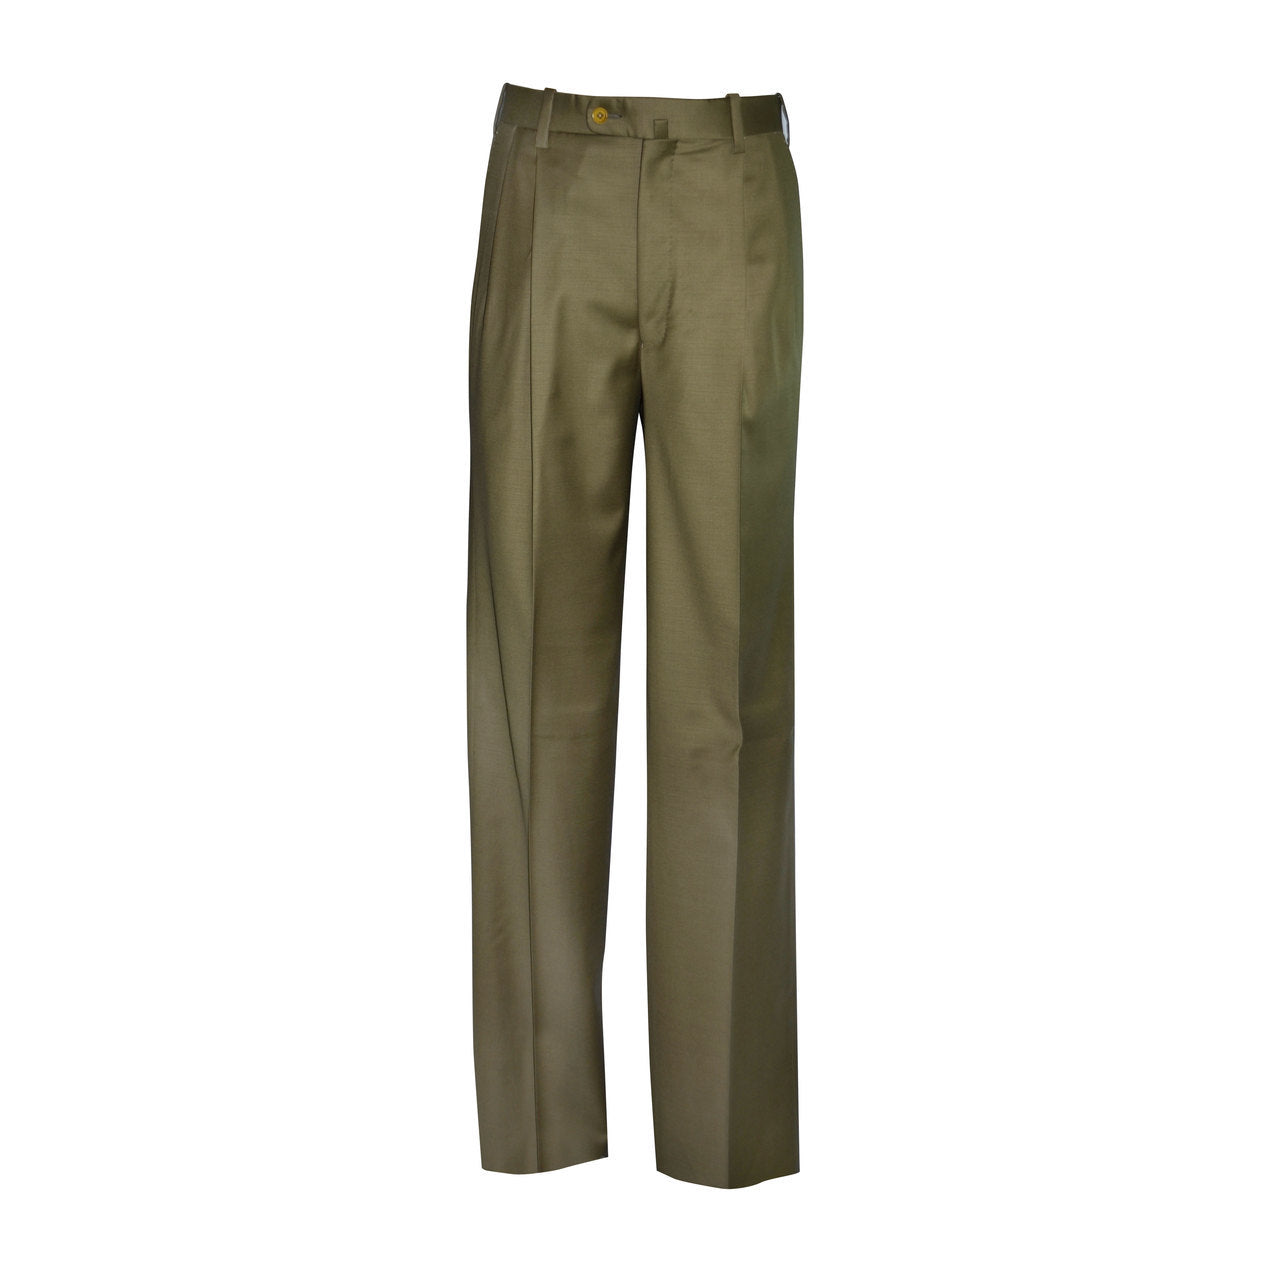 Newport Pleated Front Trouser - Moss